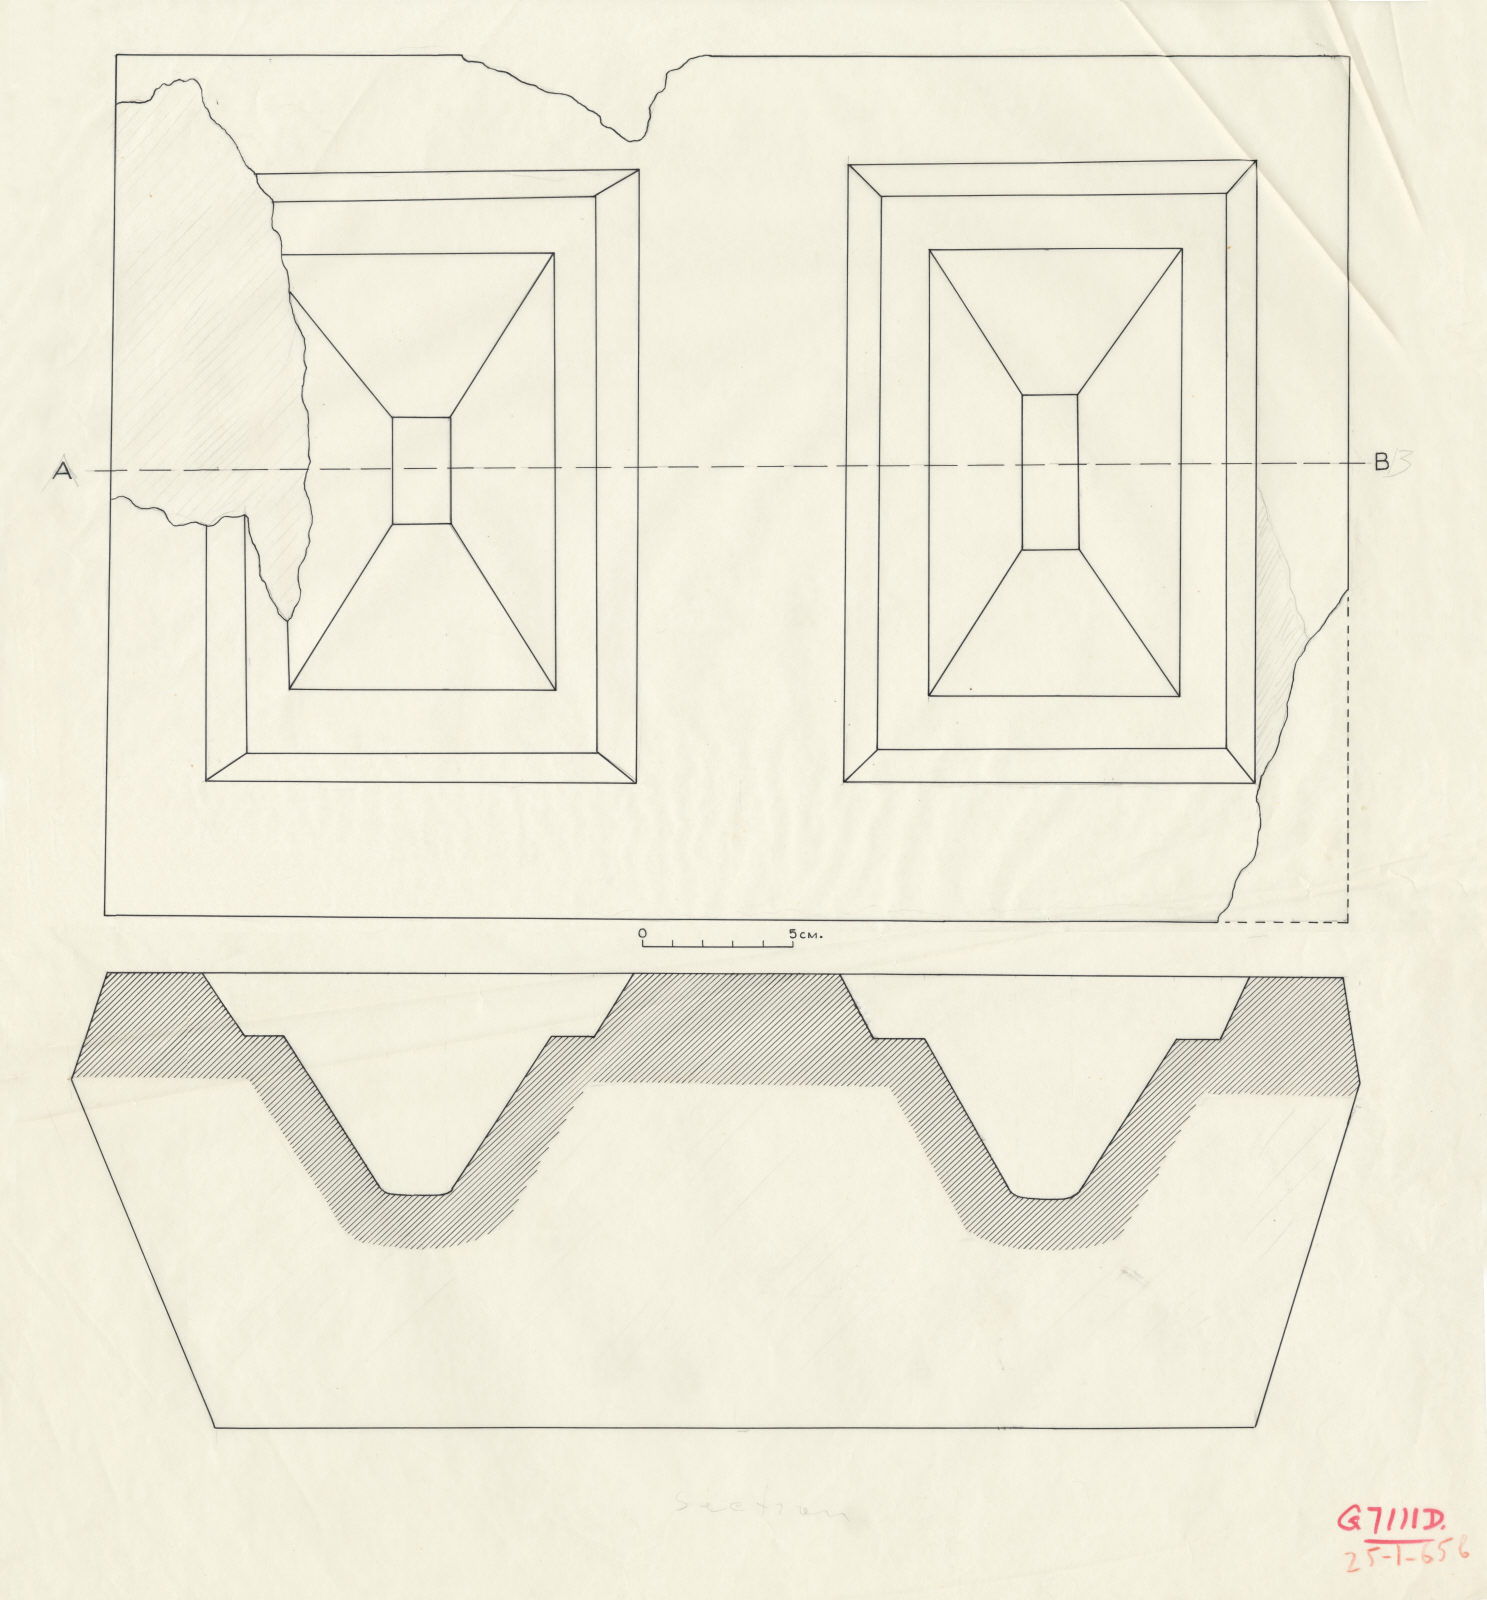 Drawings: G 7111, Shaft D: offering basin